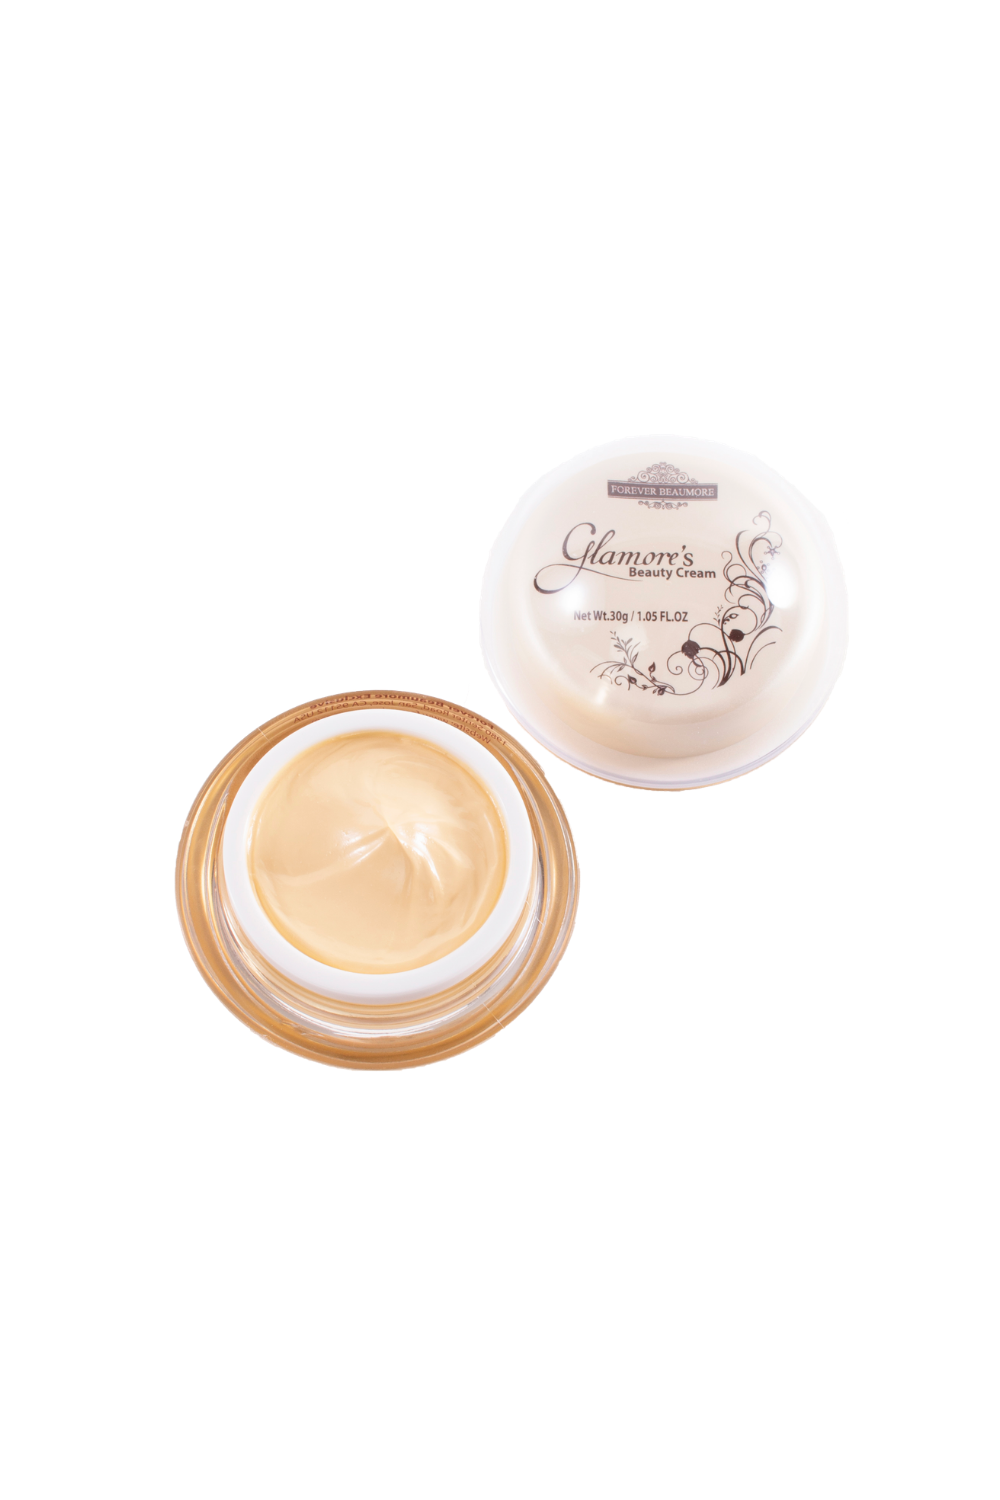 Glamore Beauty Cream